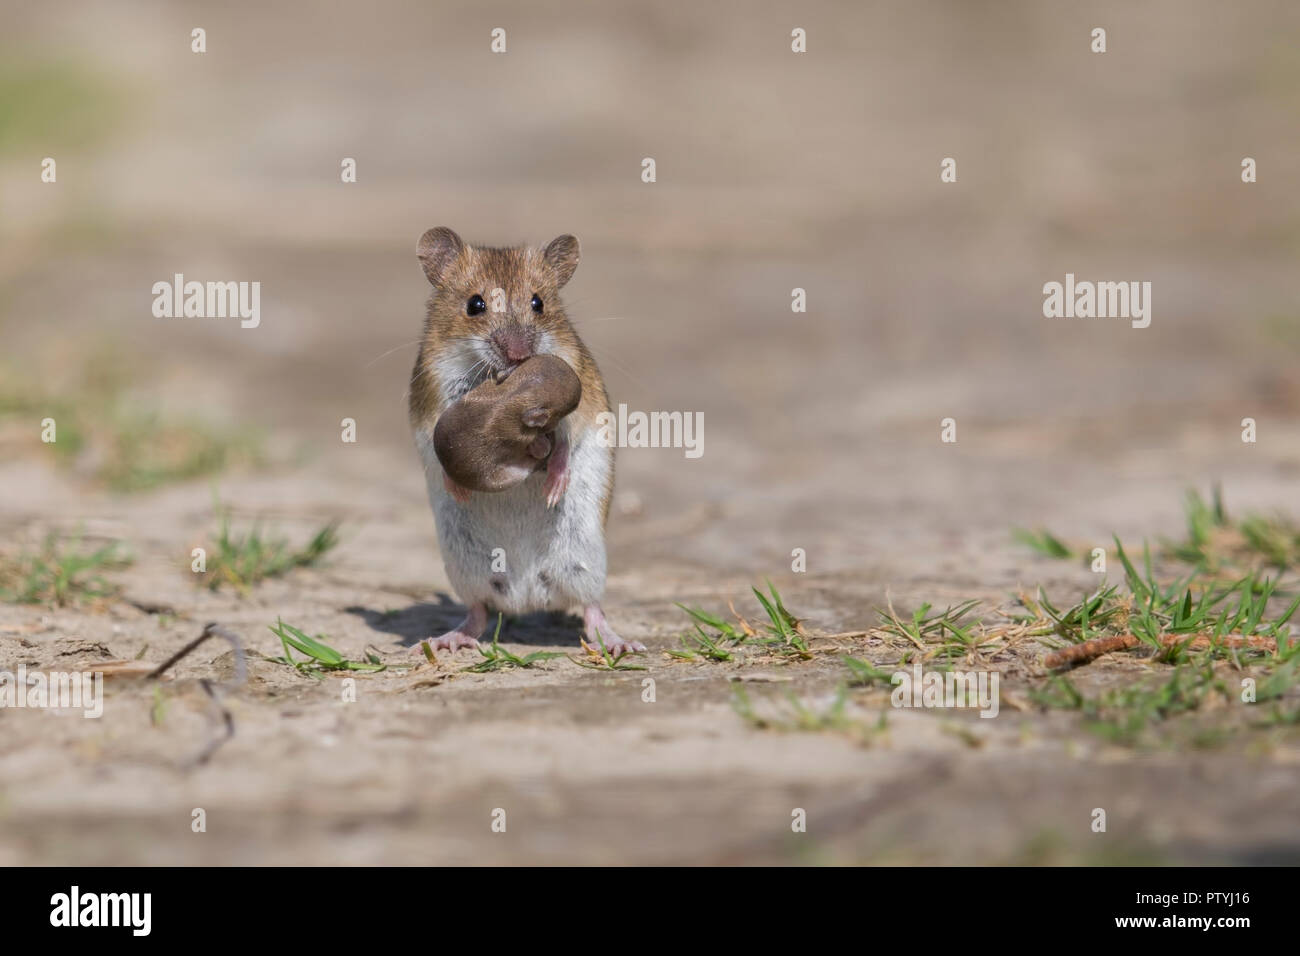 Striped Field mouse and its Young - Stock Image